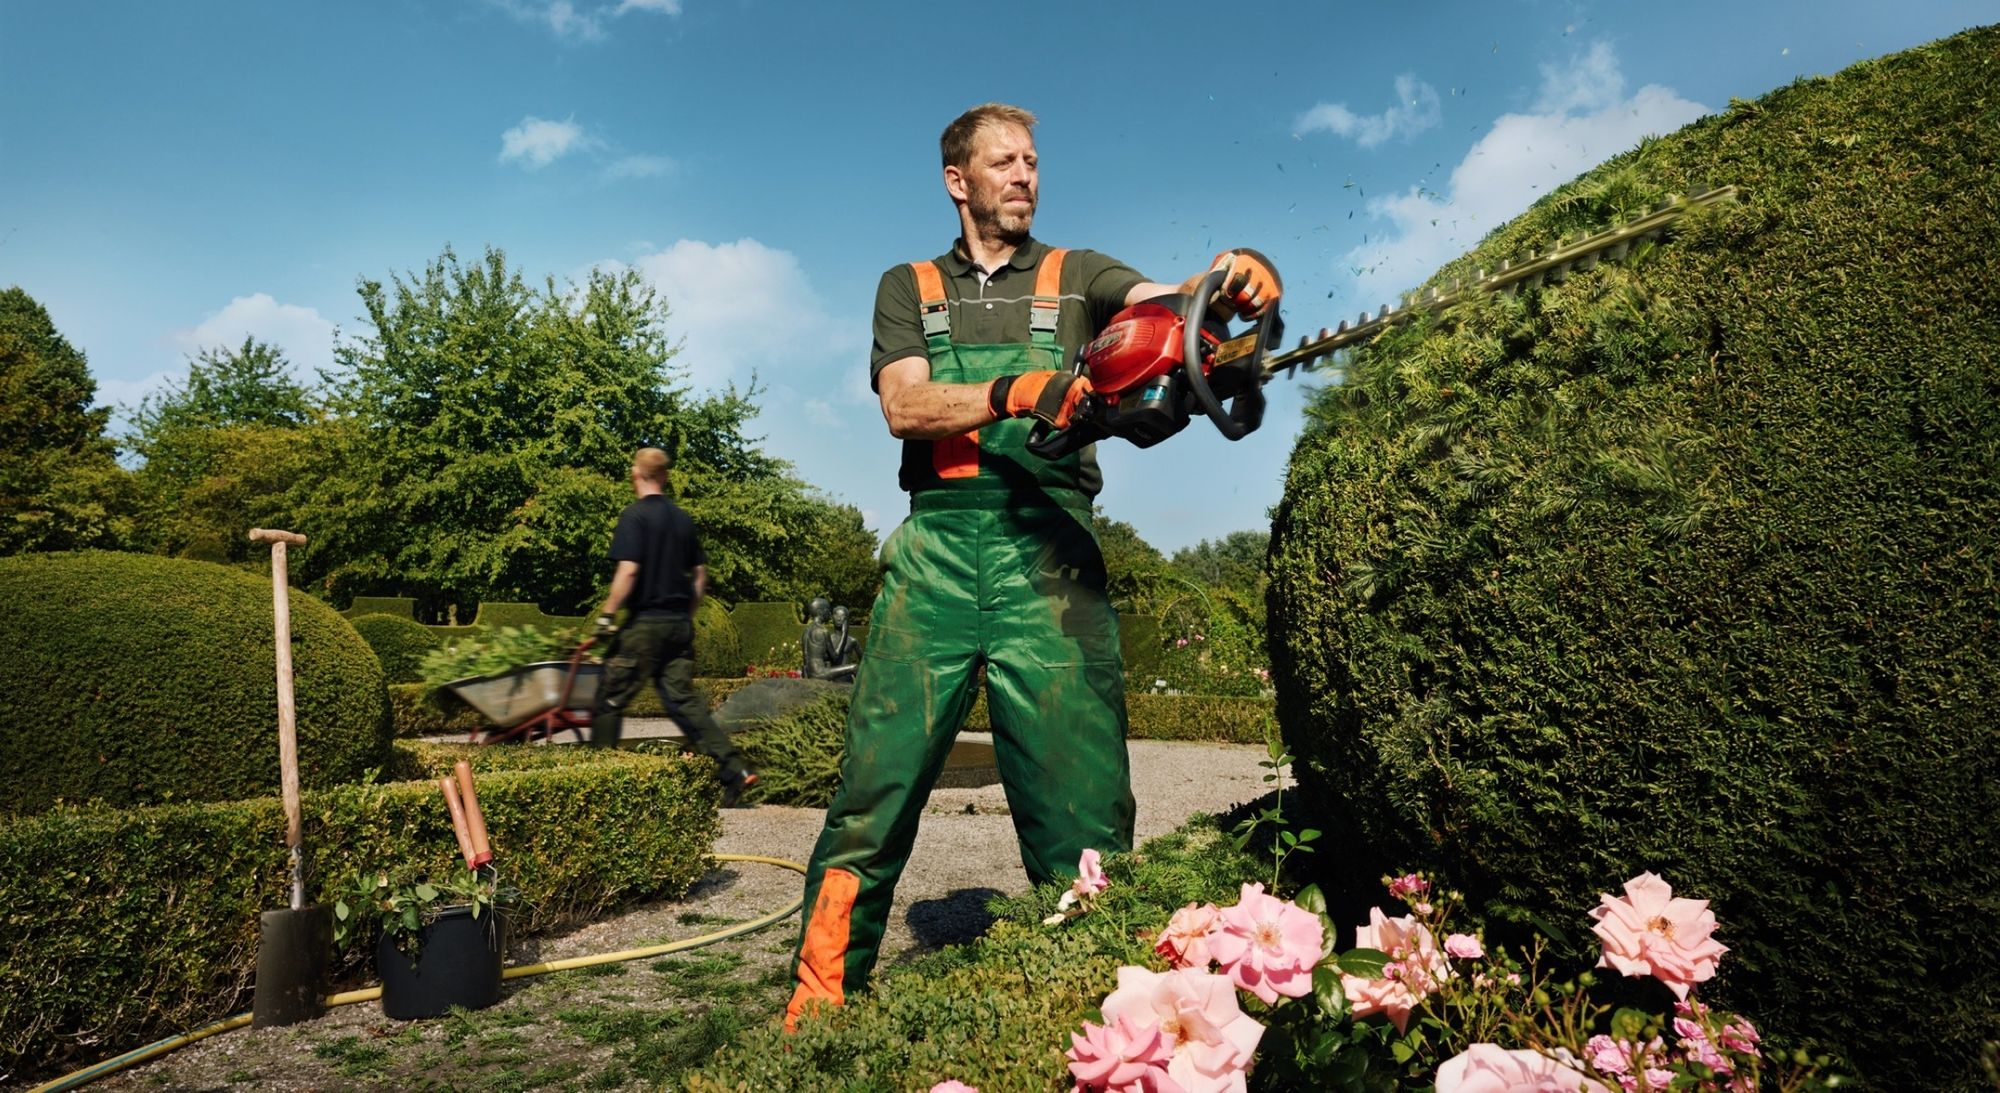 CLAAS CROPP CREATIVE PRODUCTIONS // Hornbach